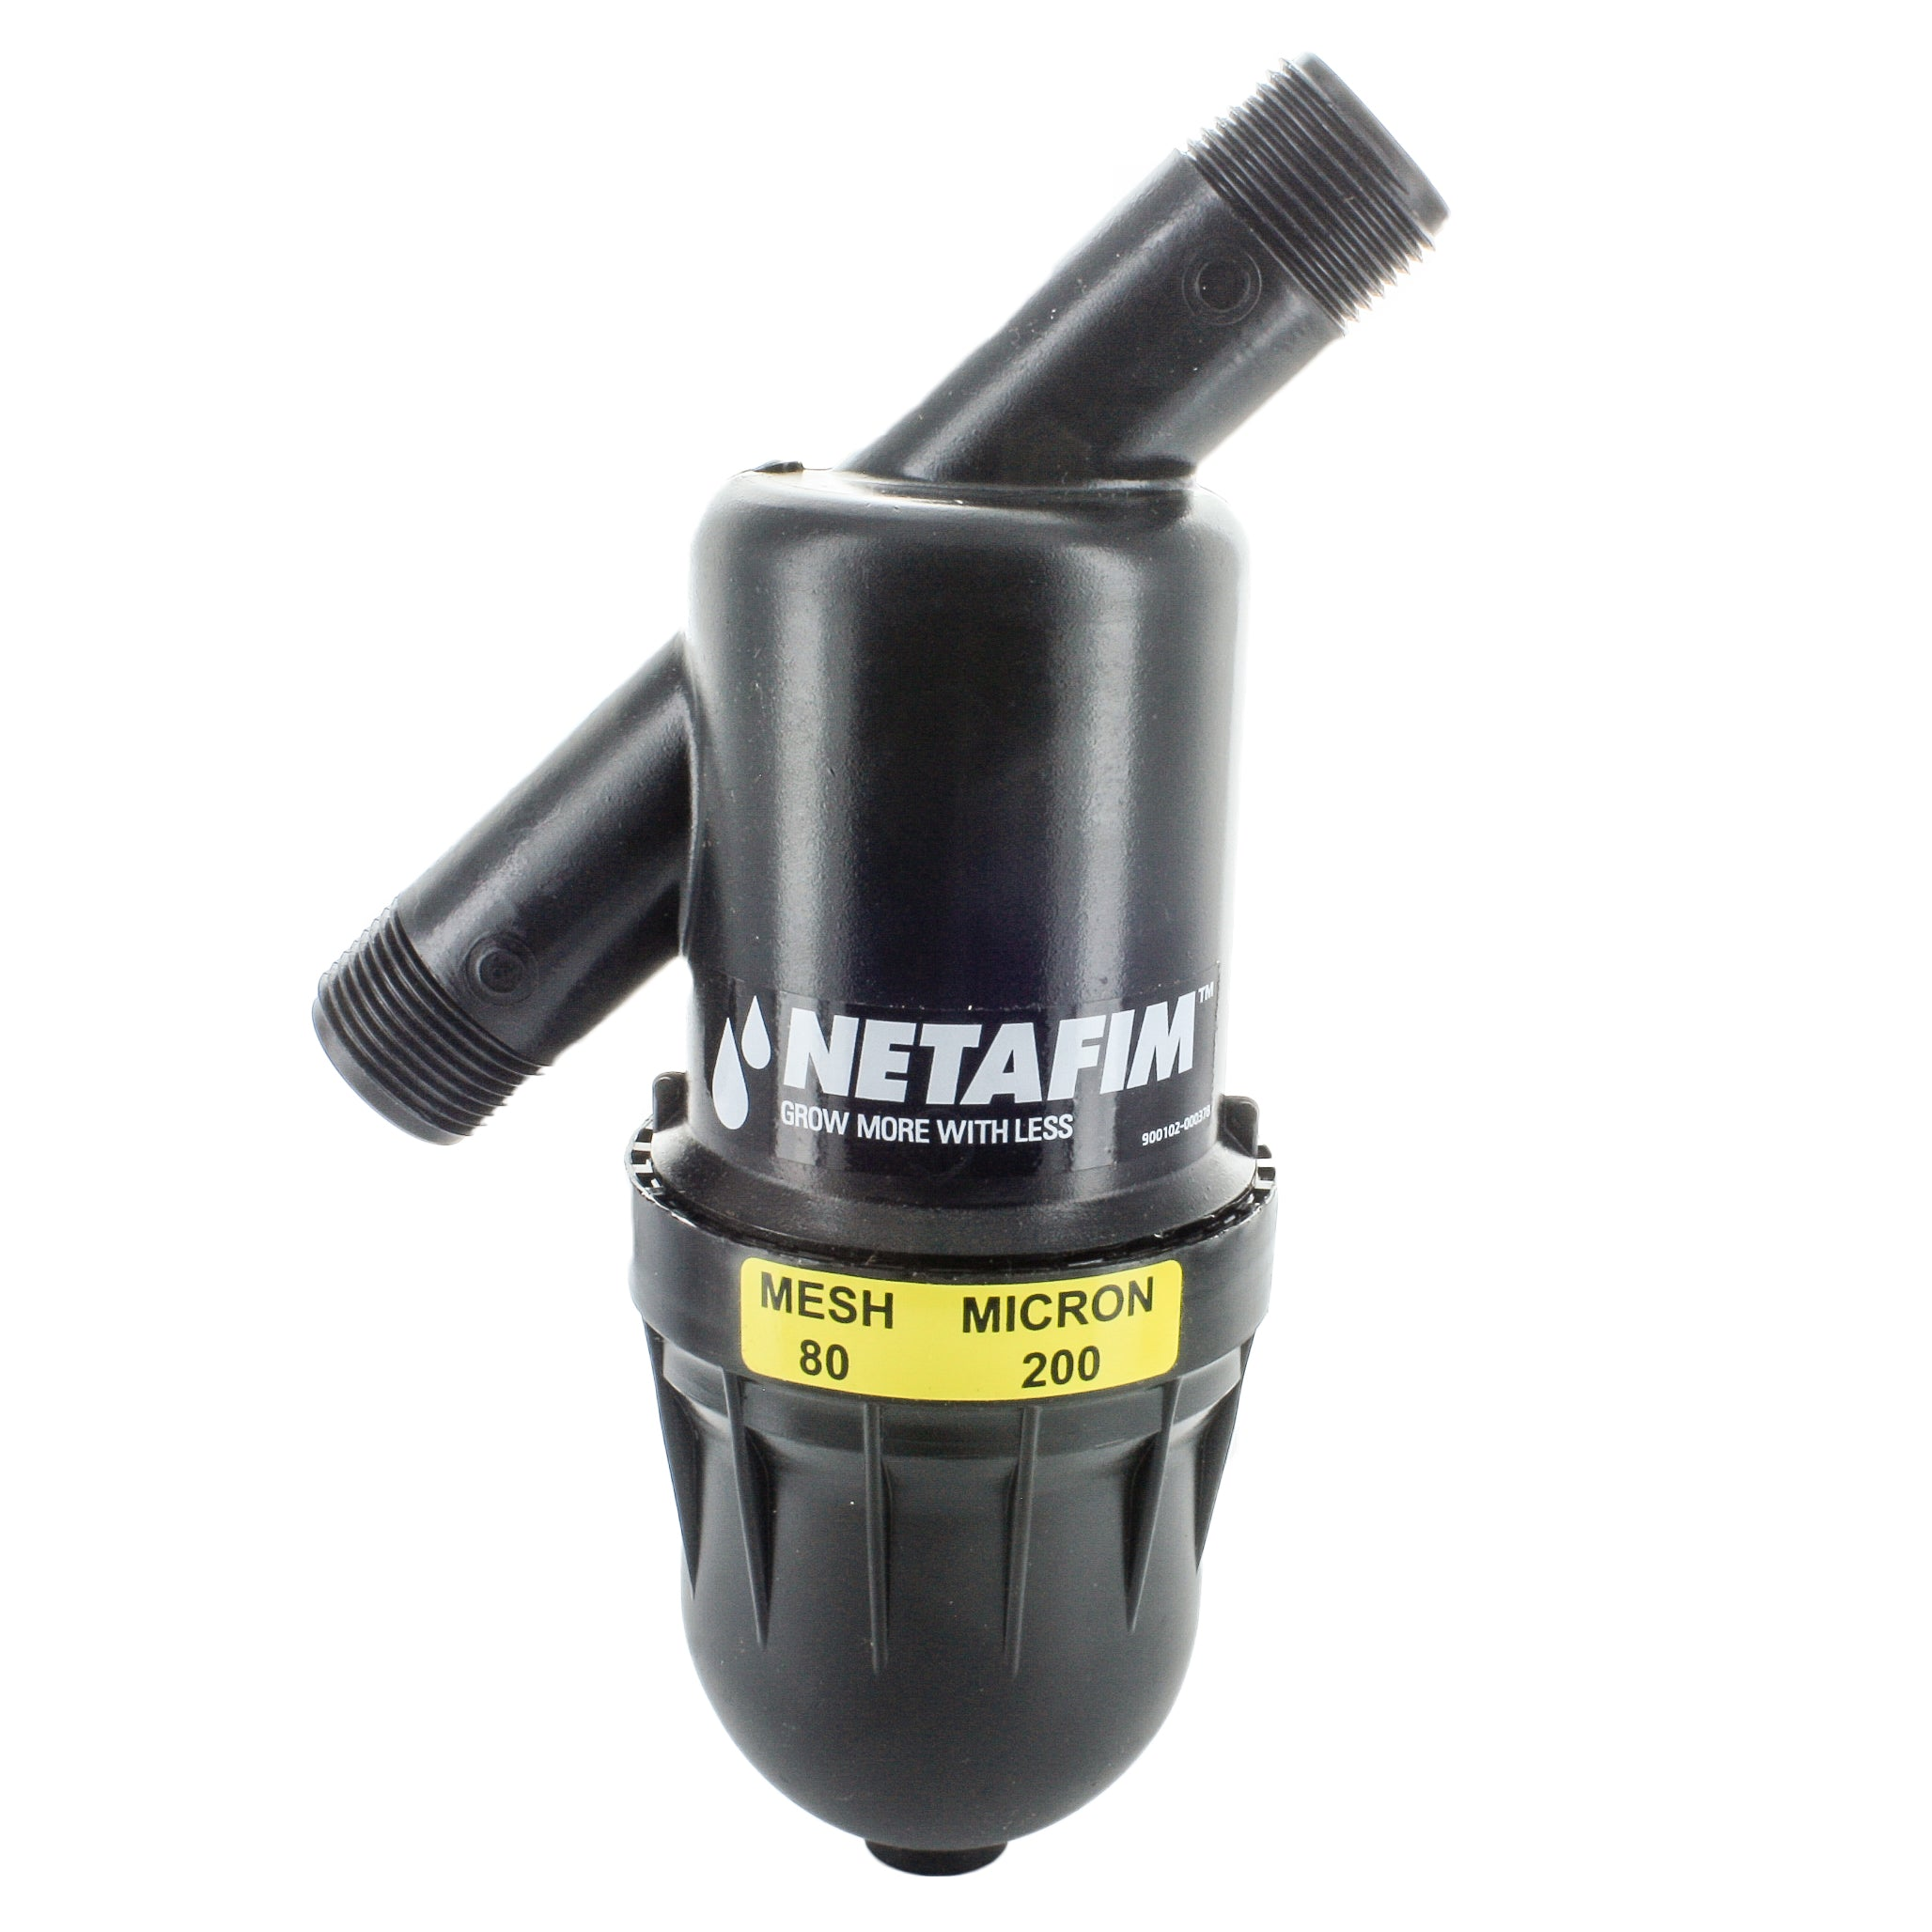 "Netafim - DF075-120 - 3/4"" Disc Filter with 120 Mesh"